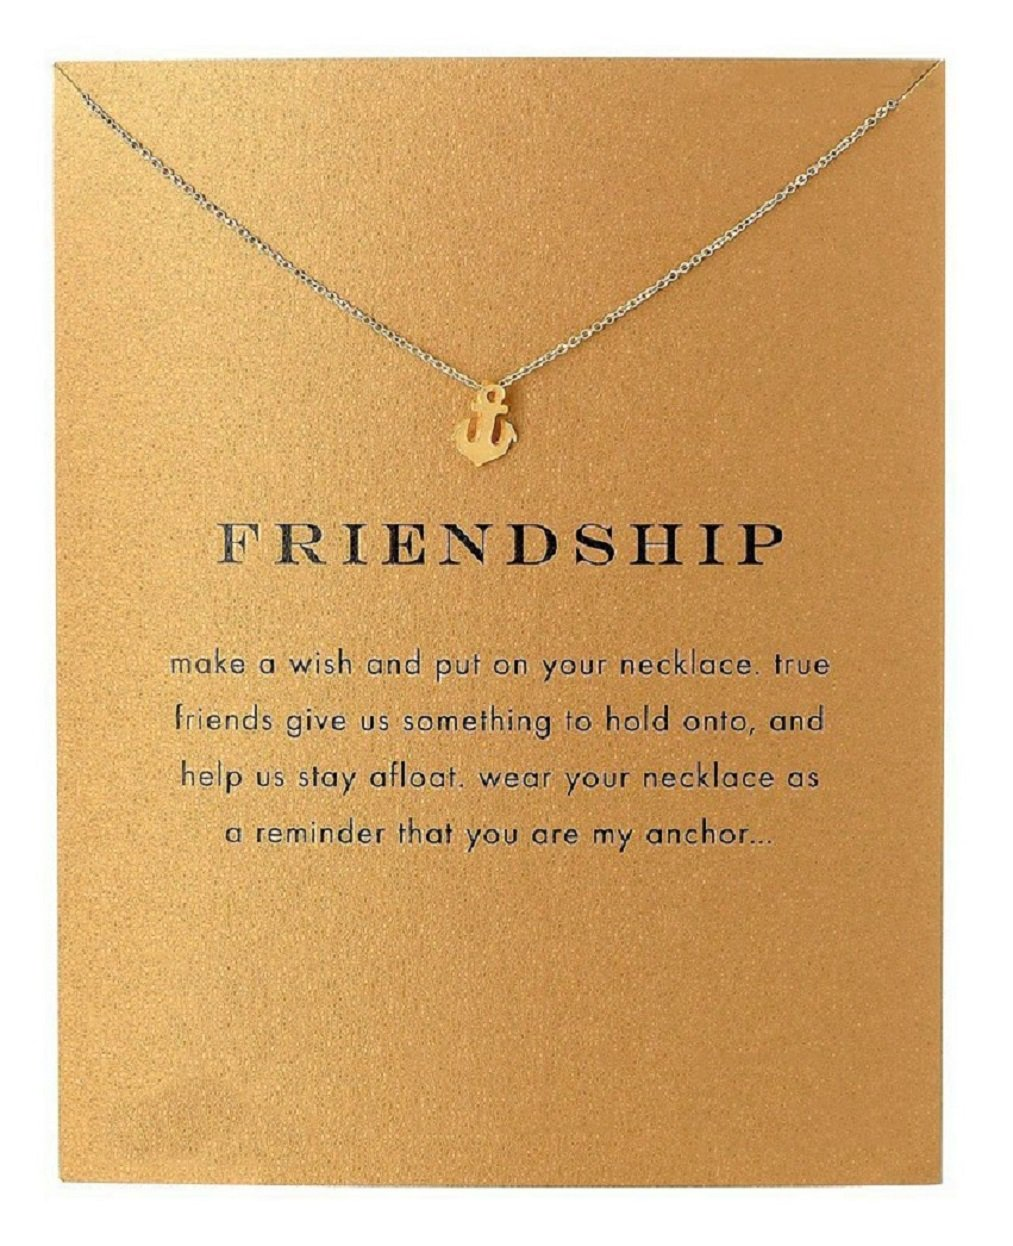 Clavicle Necklace with Card, Small Dainty Pendant,Greeting Card with Best Wish, Delicate and Classy Party Jewelry Favors, Alloy HOOPE